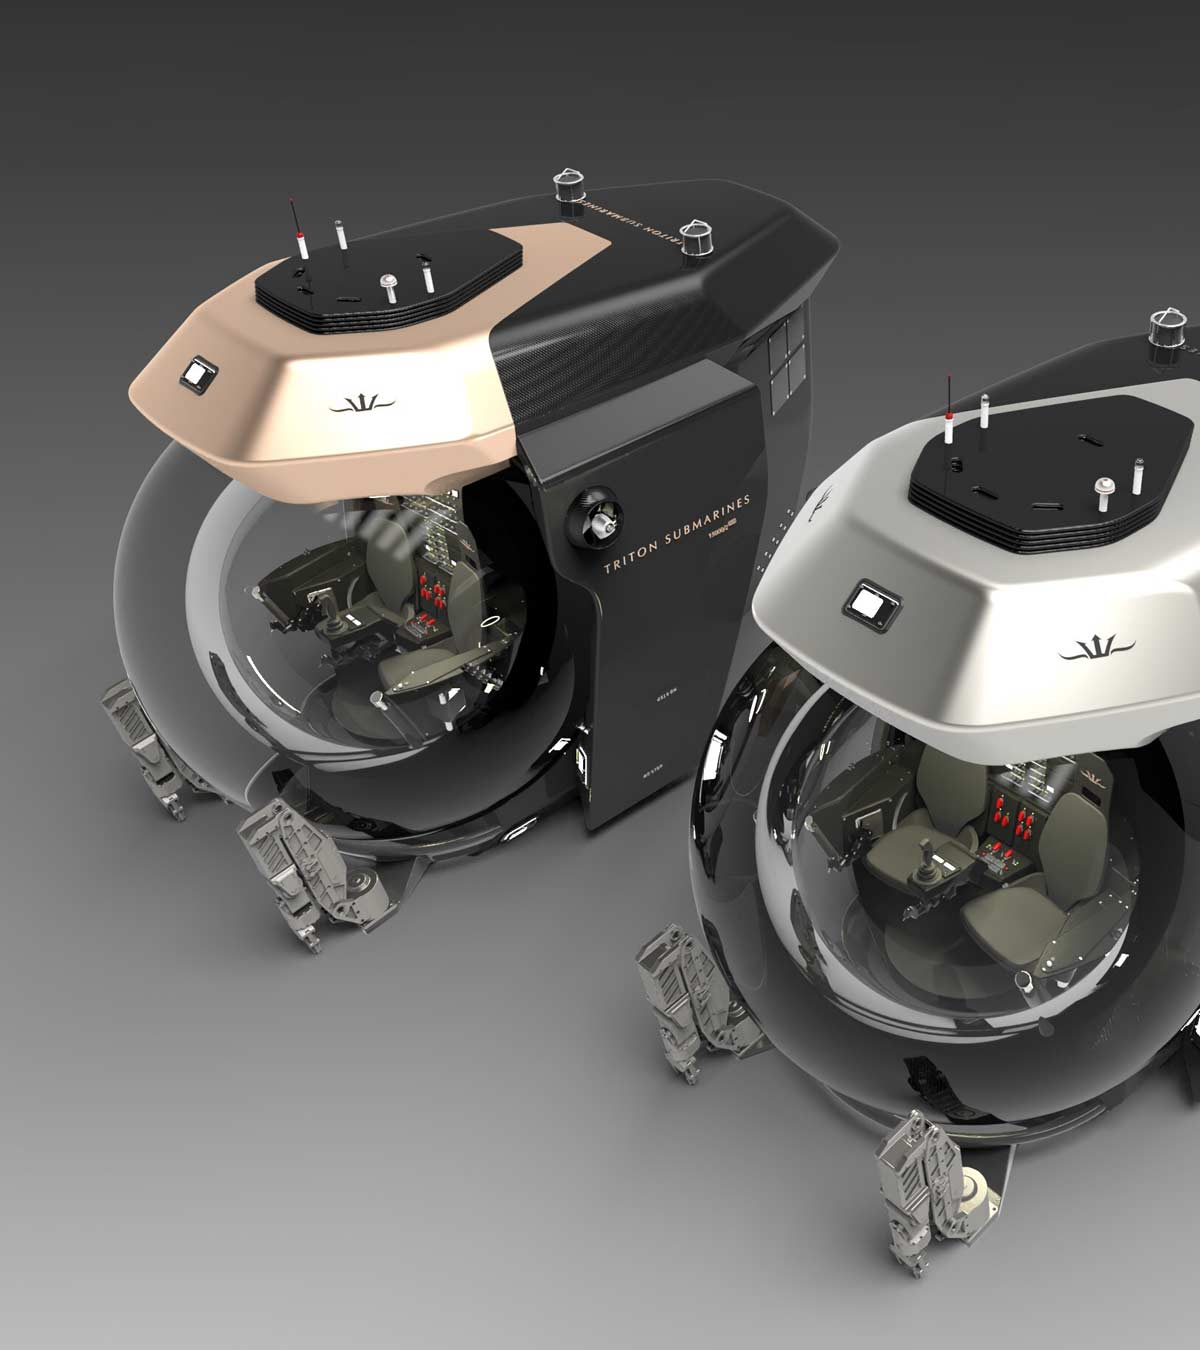 Two Triton Gull Wing submersibles side-by-side